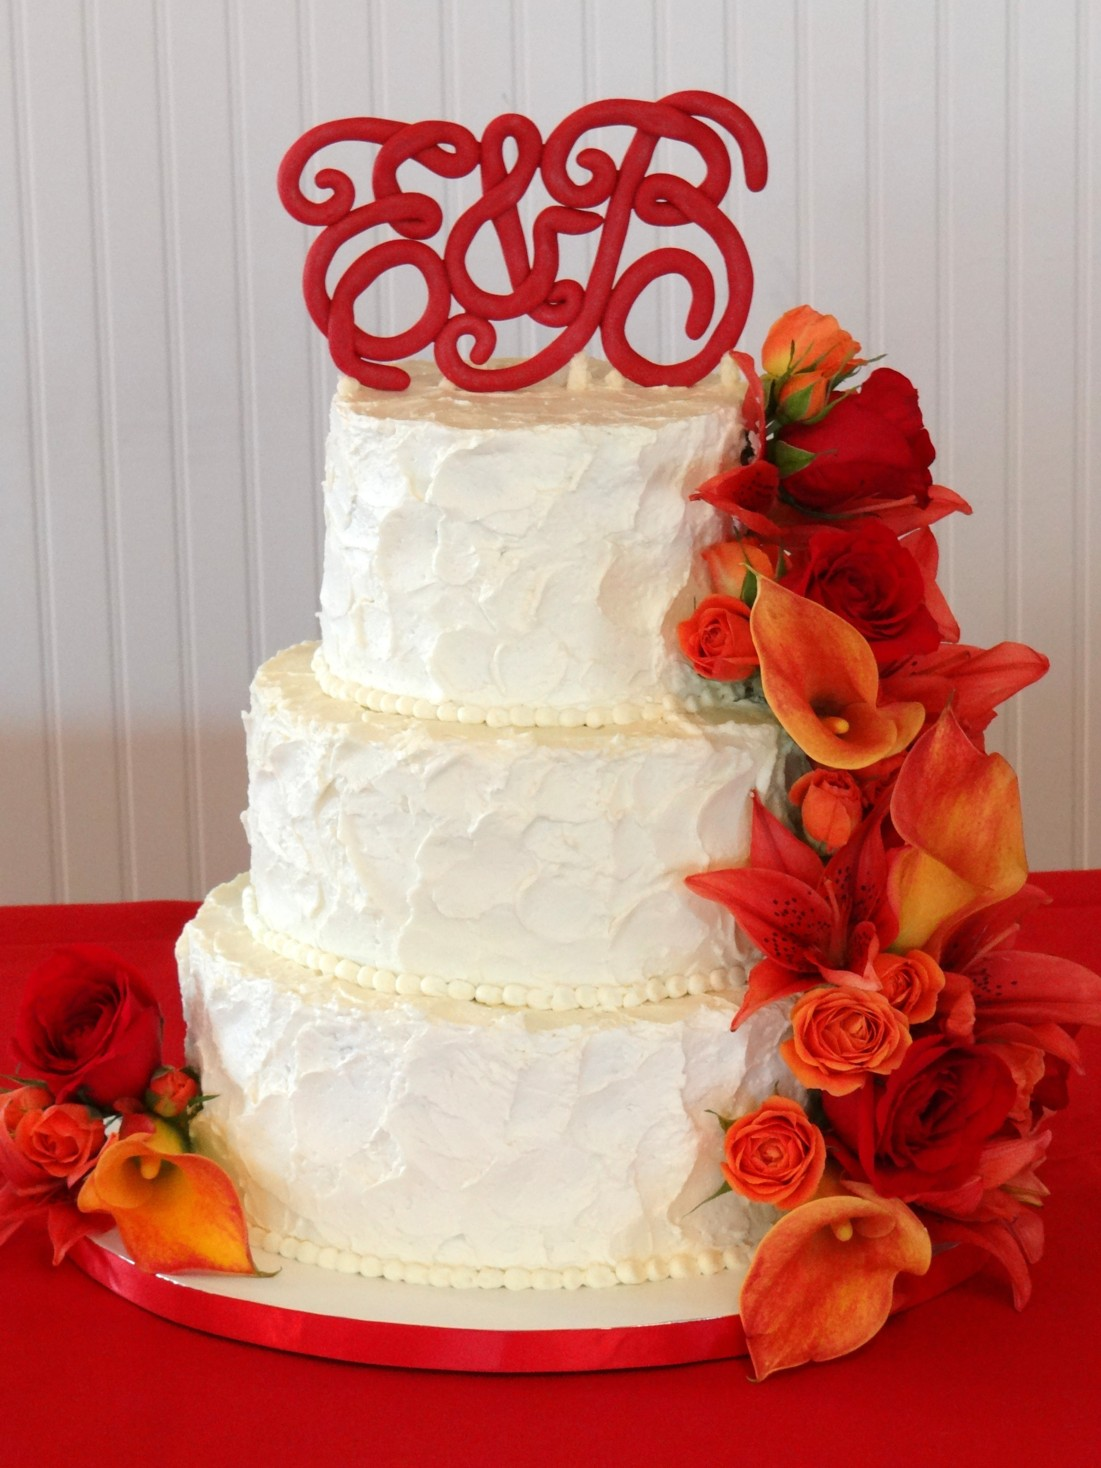 Tiers of Joy Cakery Textured Wedding Cake with Red